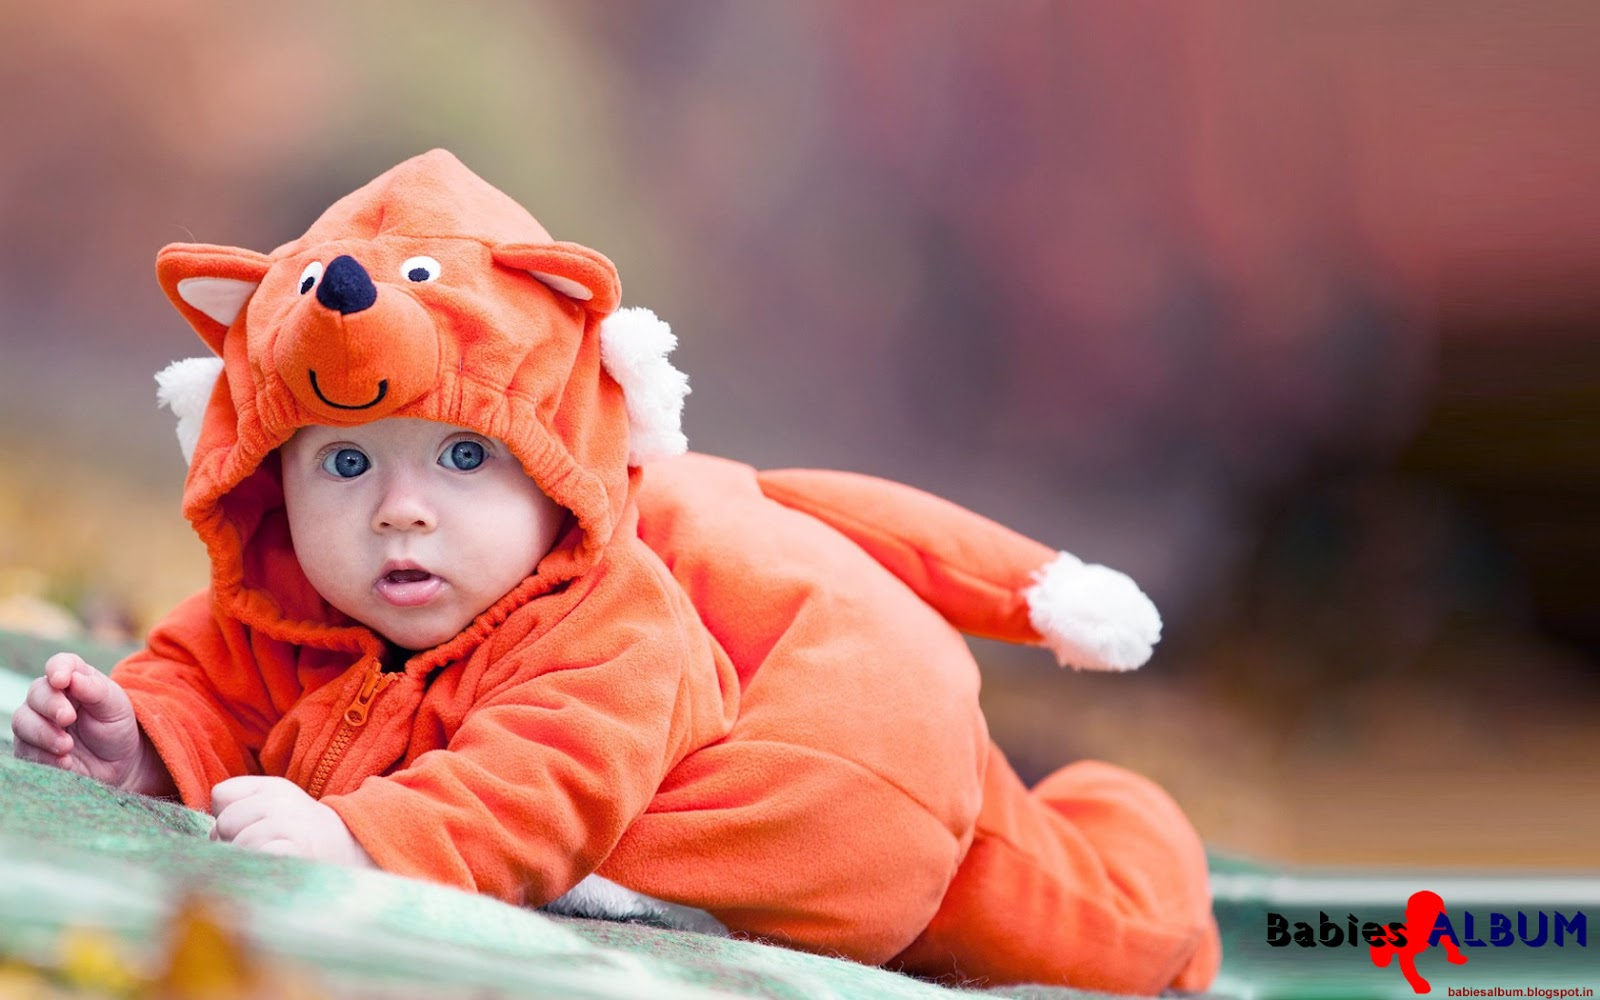 cute babies: 7 cutest babies - sweet kids / babies - baby